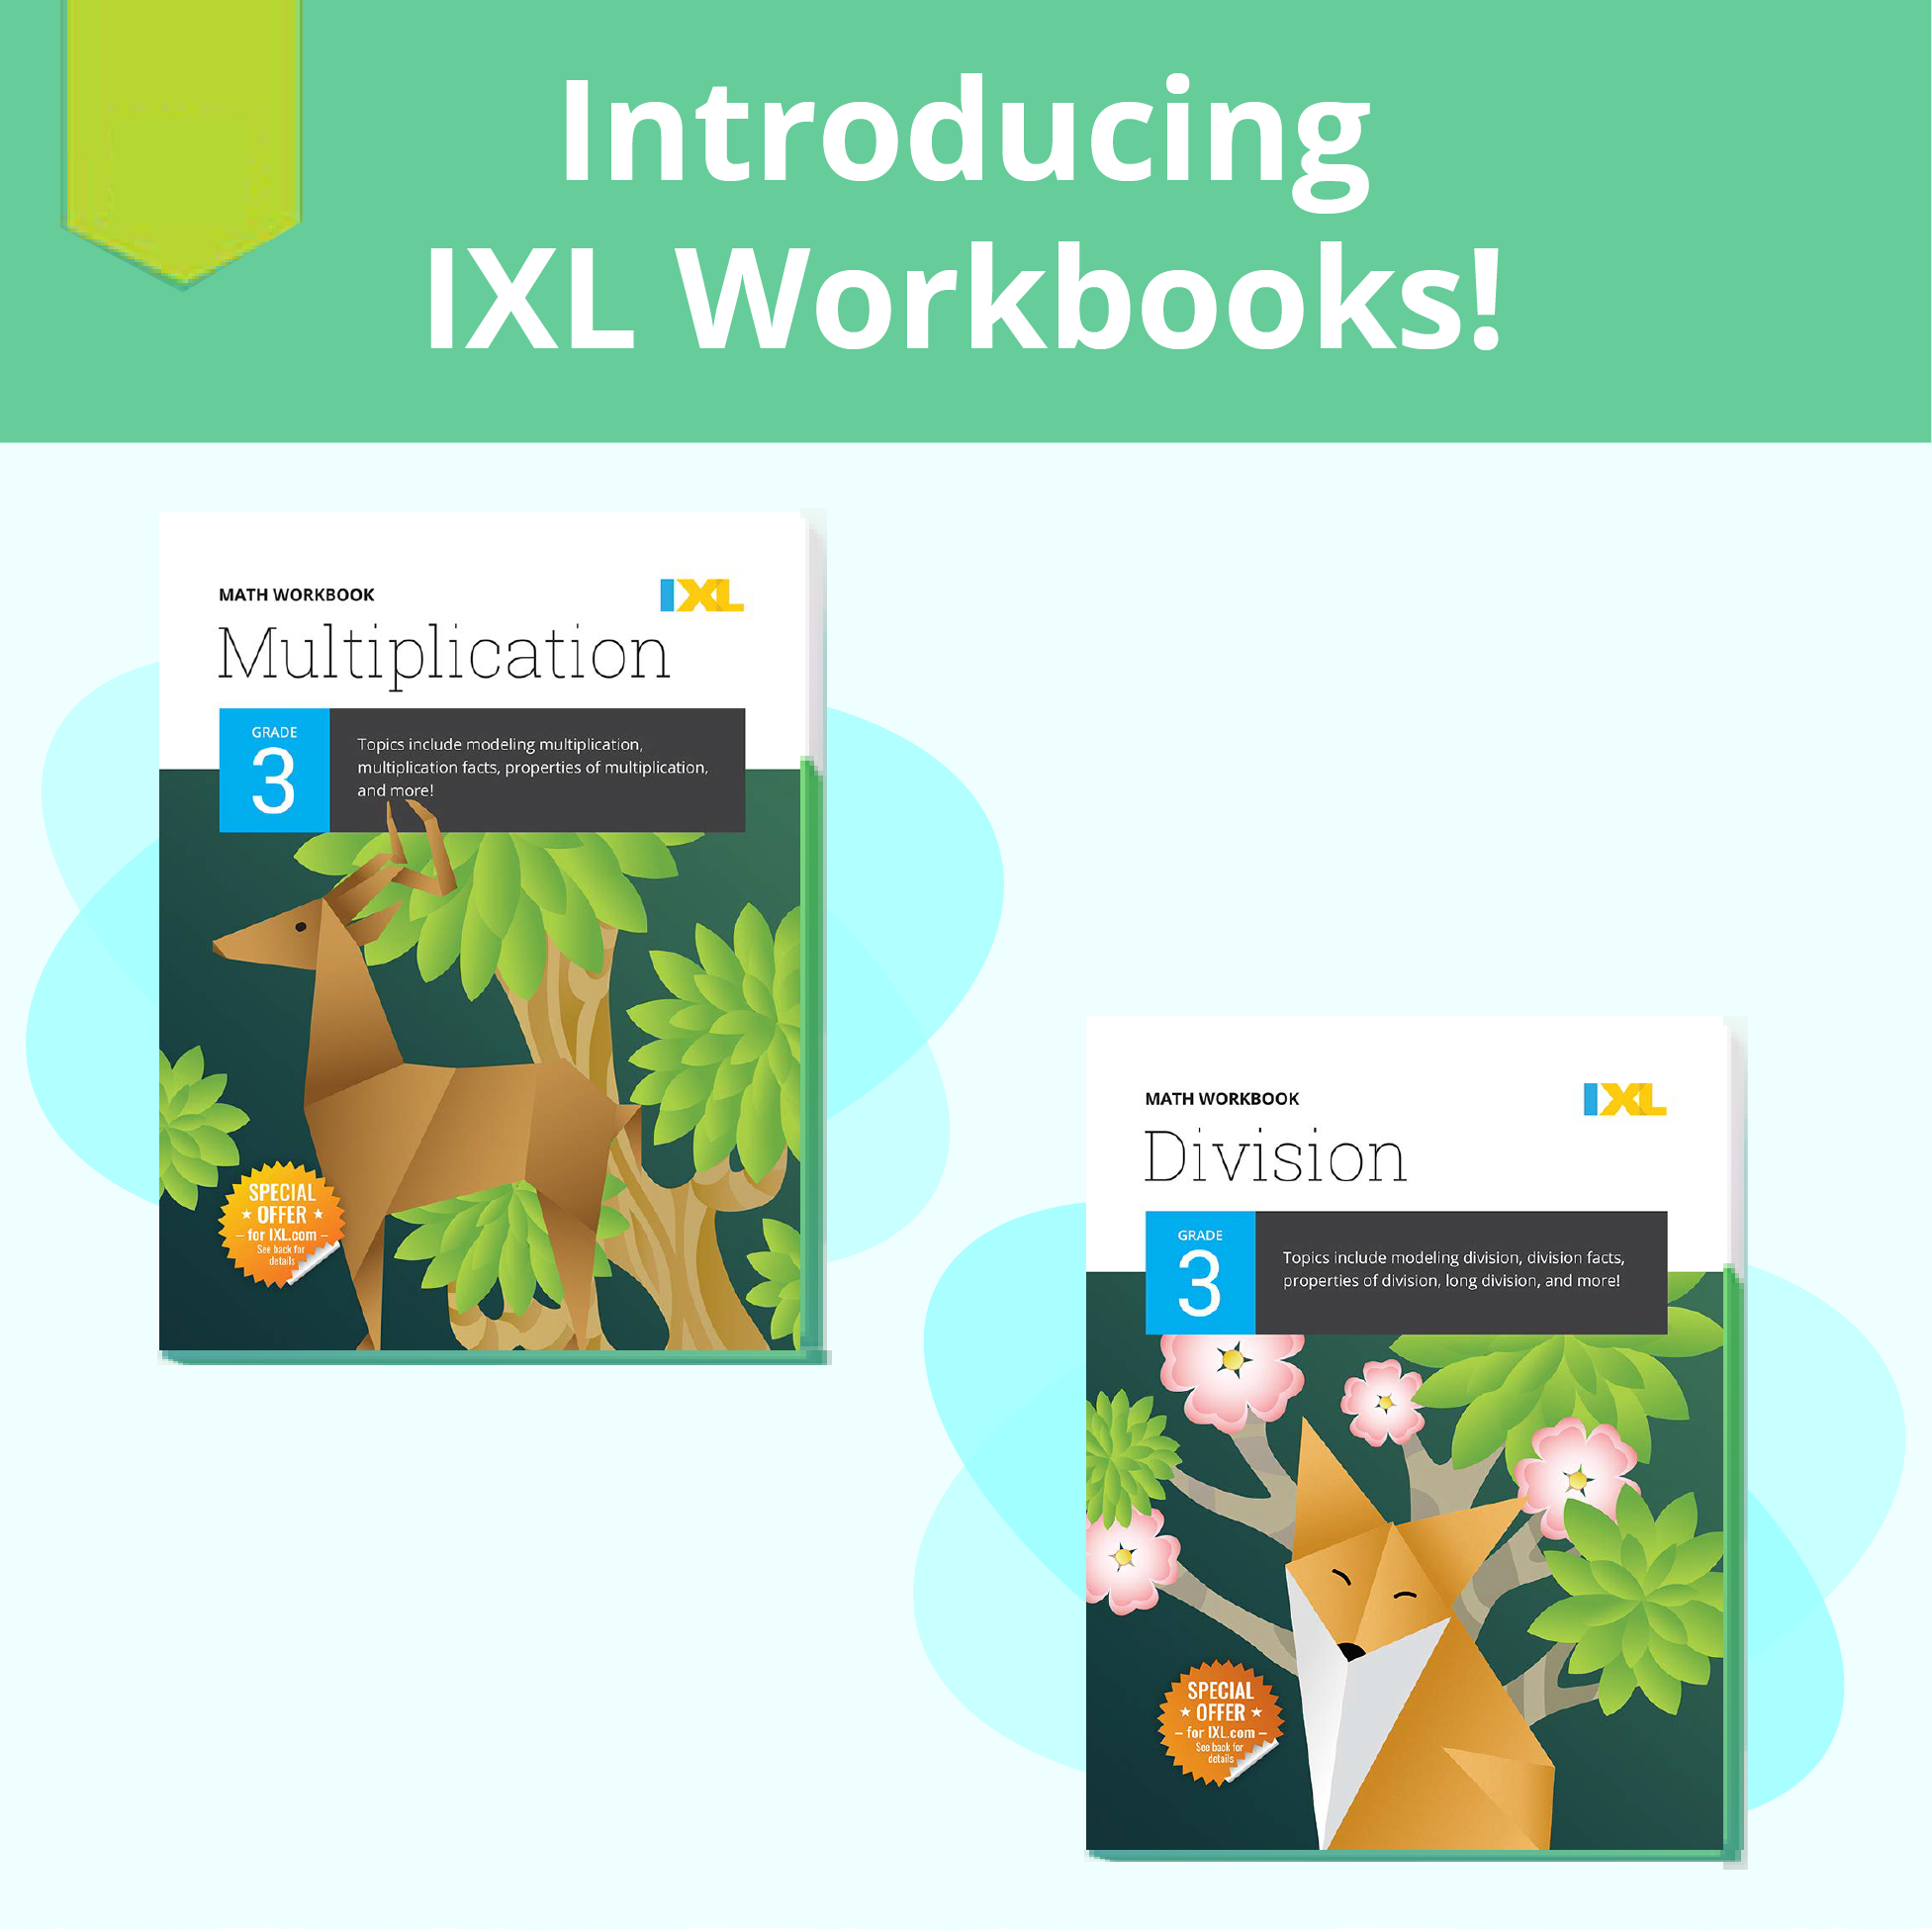 Introducing IXL workbooks